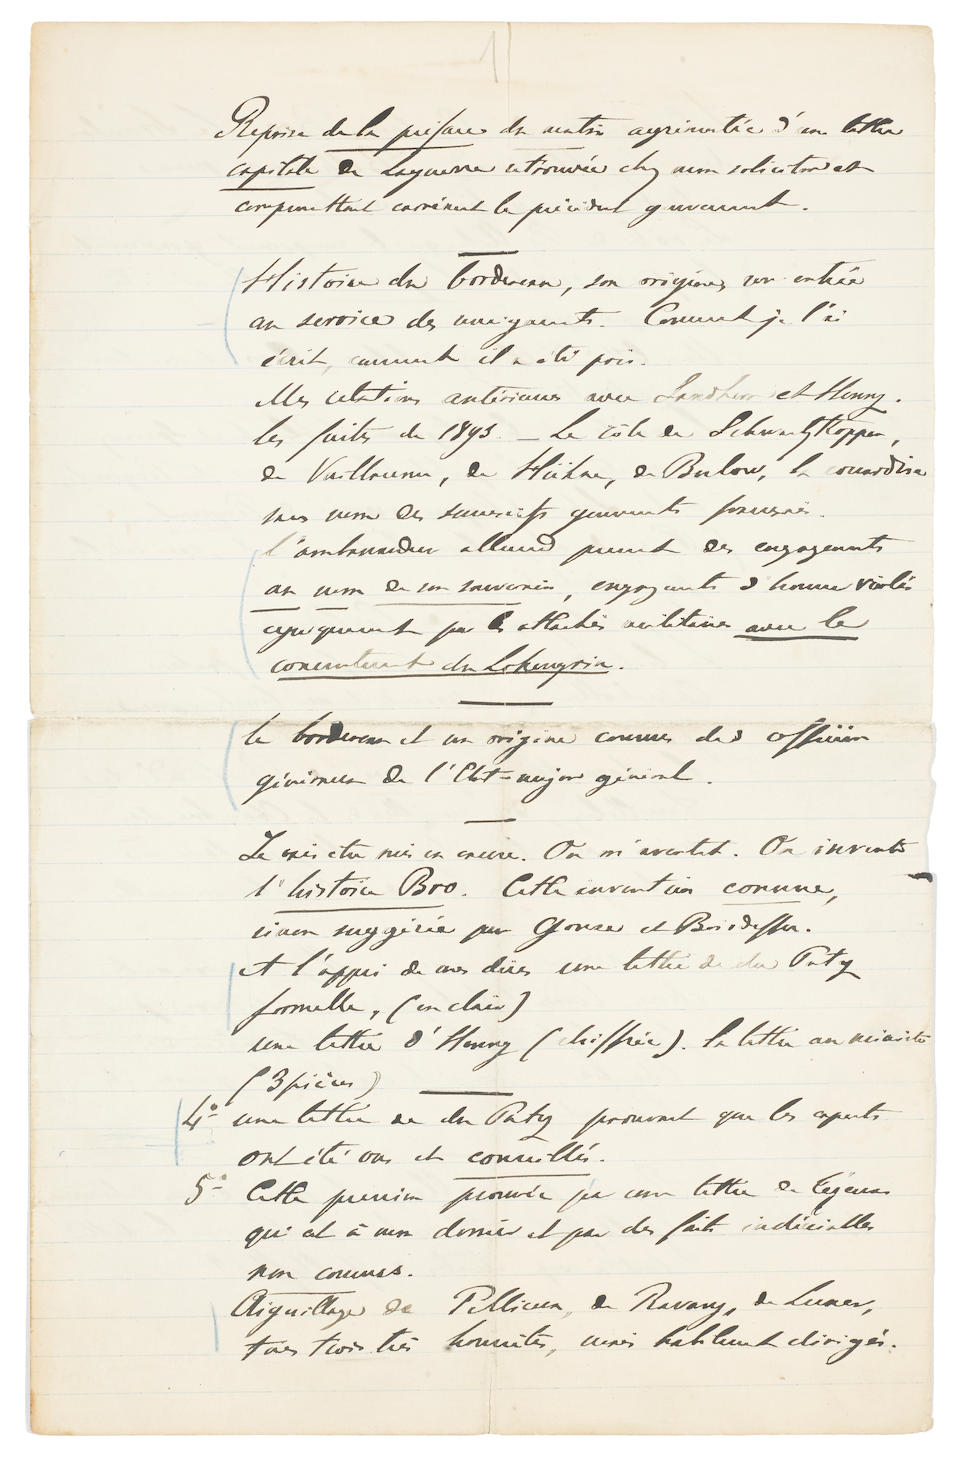 THE DREYFUS AFFAIR & ÉMILE ZOLA.  A GROUP OF LETTERS AND MANUSCRIPTS CENTRAL TO THE TRIAL OF THE 19TH CENTURY.